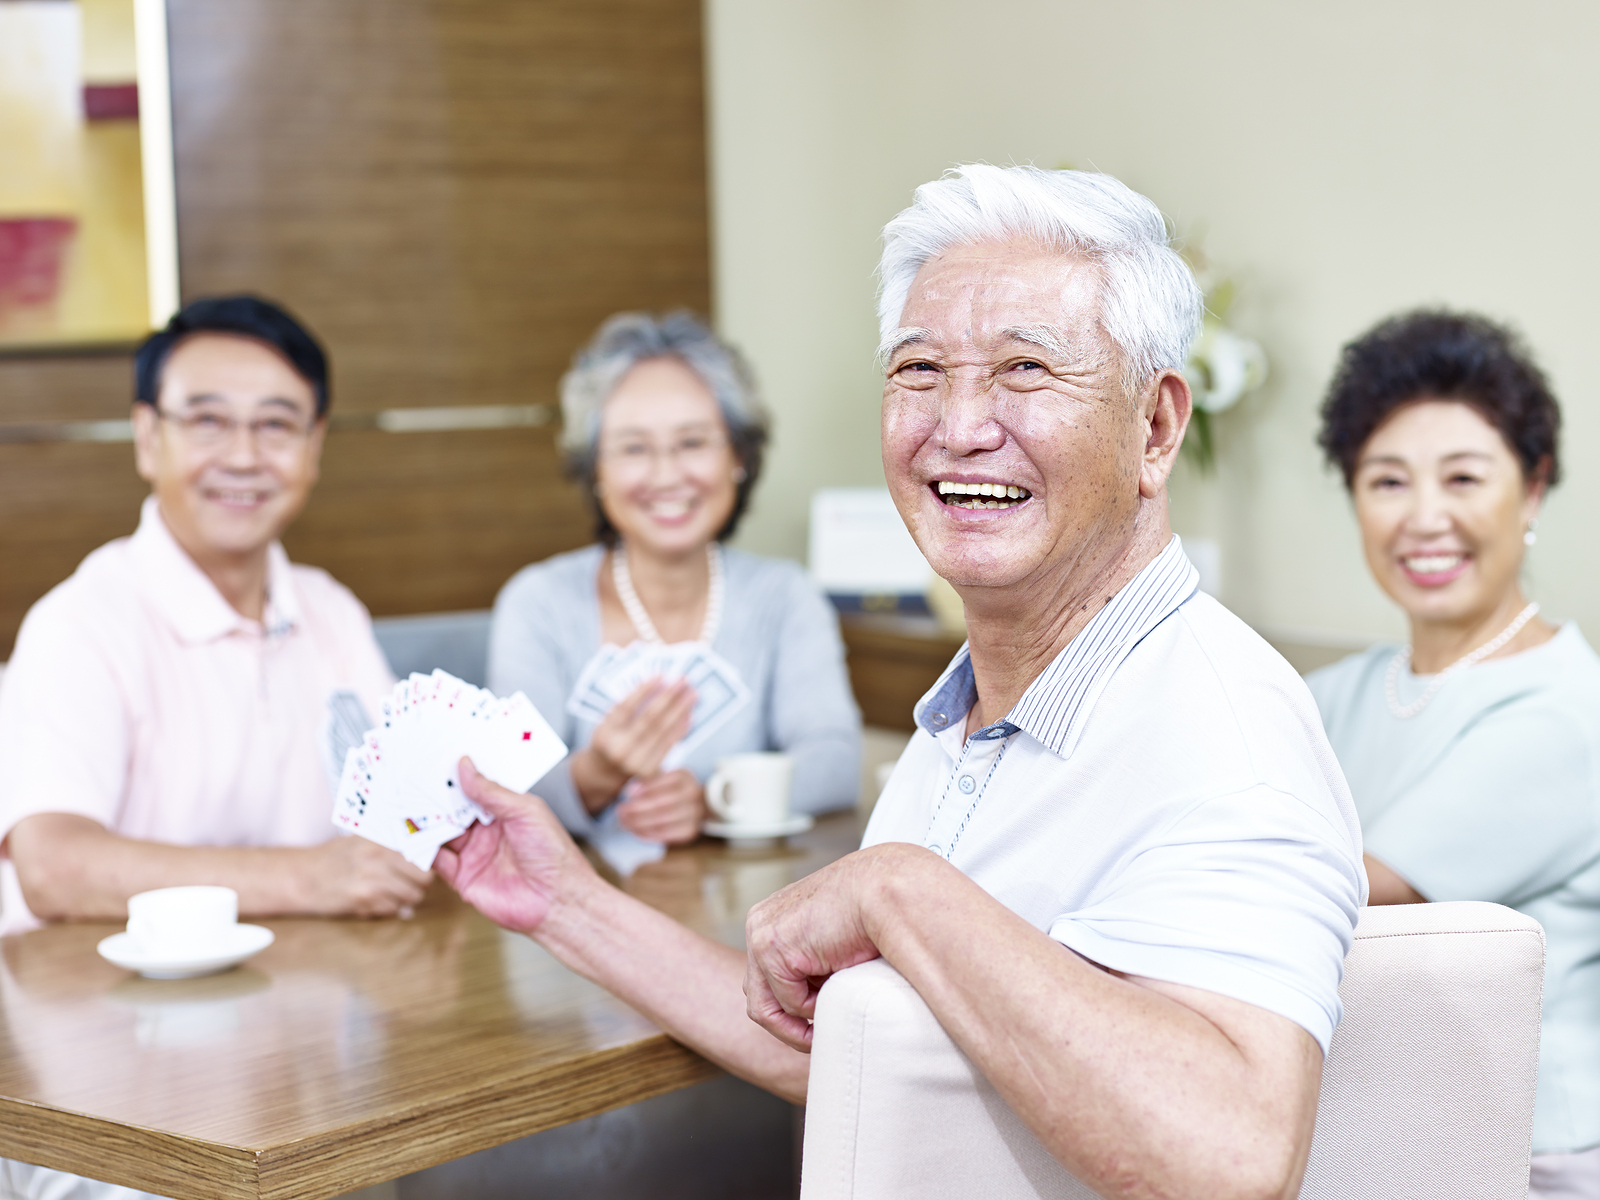 Seniors happy with their choice of retirement communities for their future